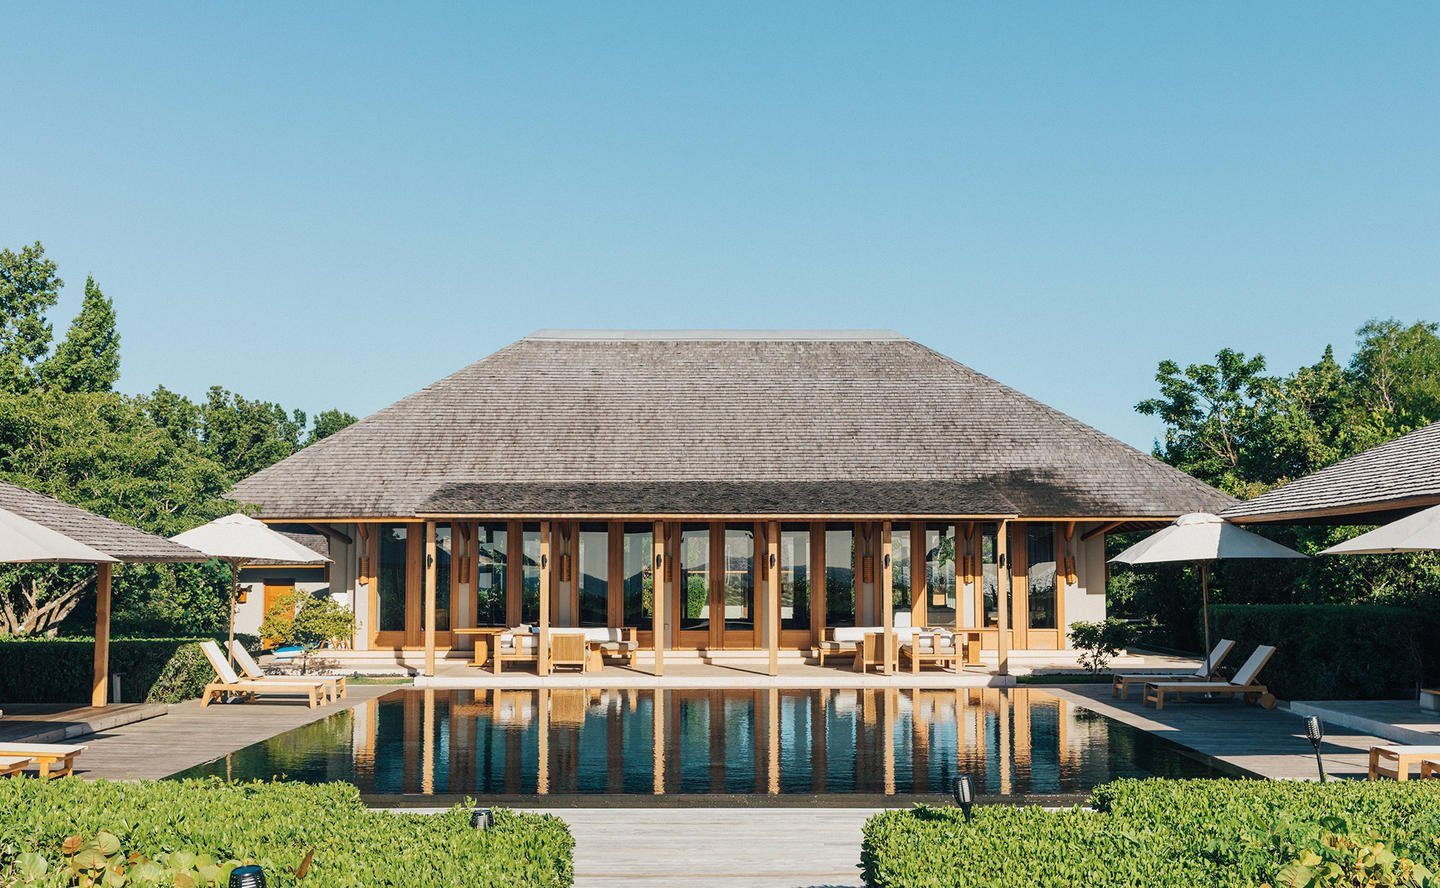 Living Pavilion & Swimming Pool, Four-Bedroom Beach Sala Villa - Amanyara, Turks & Caicos